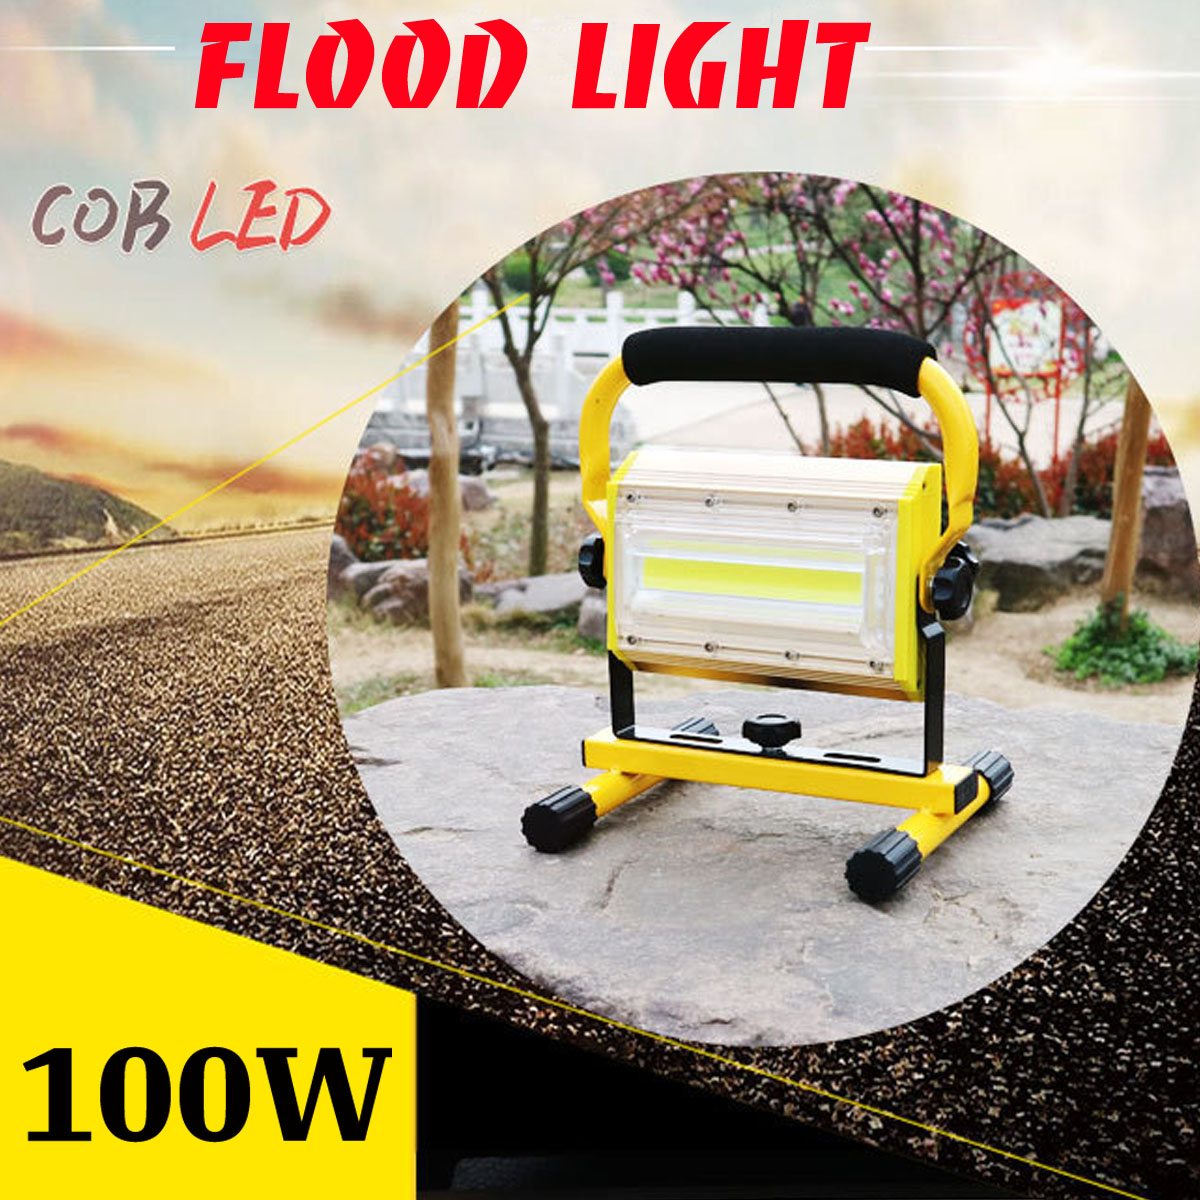 2400lm 100W Flood Light Powerful Waterproof Rechargeable LED Tactical Camping Fishing Working Torch Flash Lamp Flashlight2400lm 100W Flood Light Powerful Waterproof Rechargeable LED Tactical Camping Fishing Working Torch Flash Lamp Flashlight